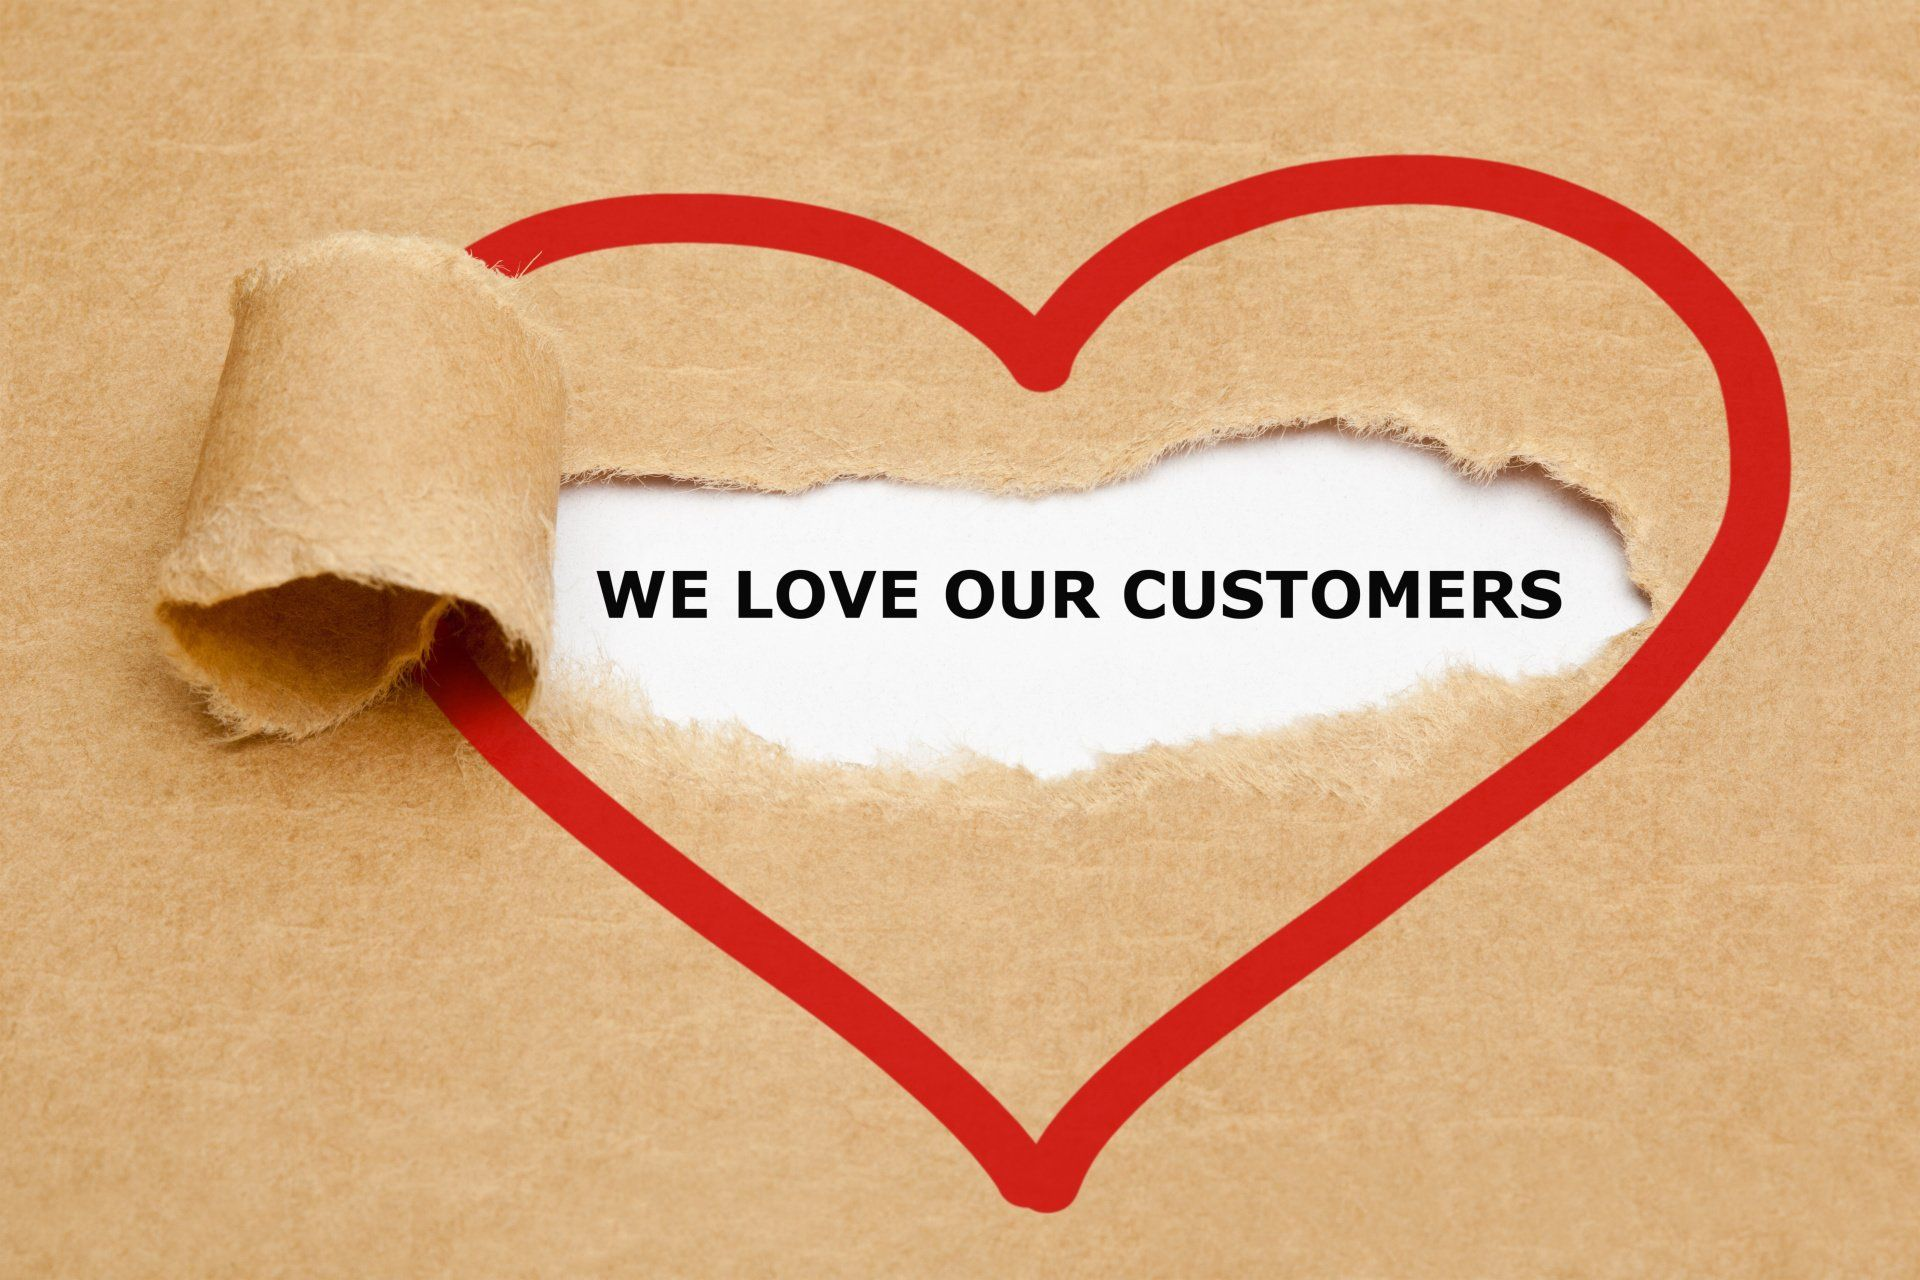 a heart that says 'we love our customers'